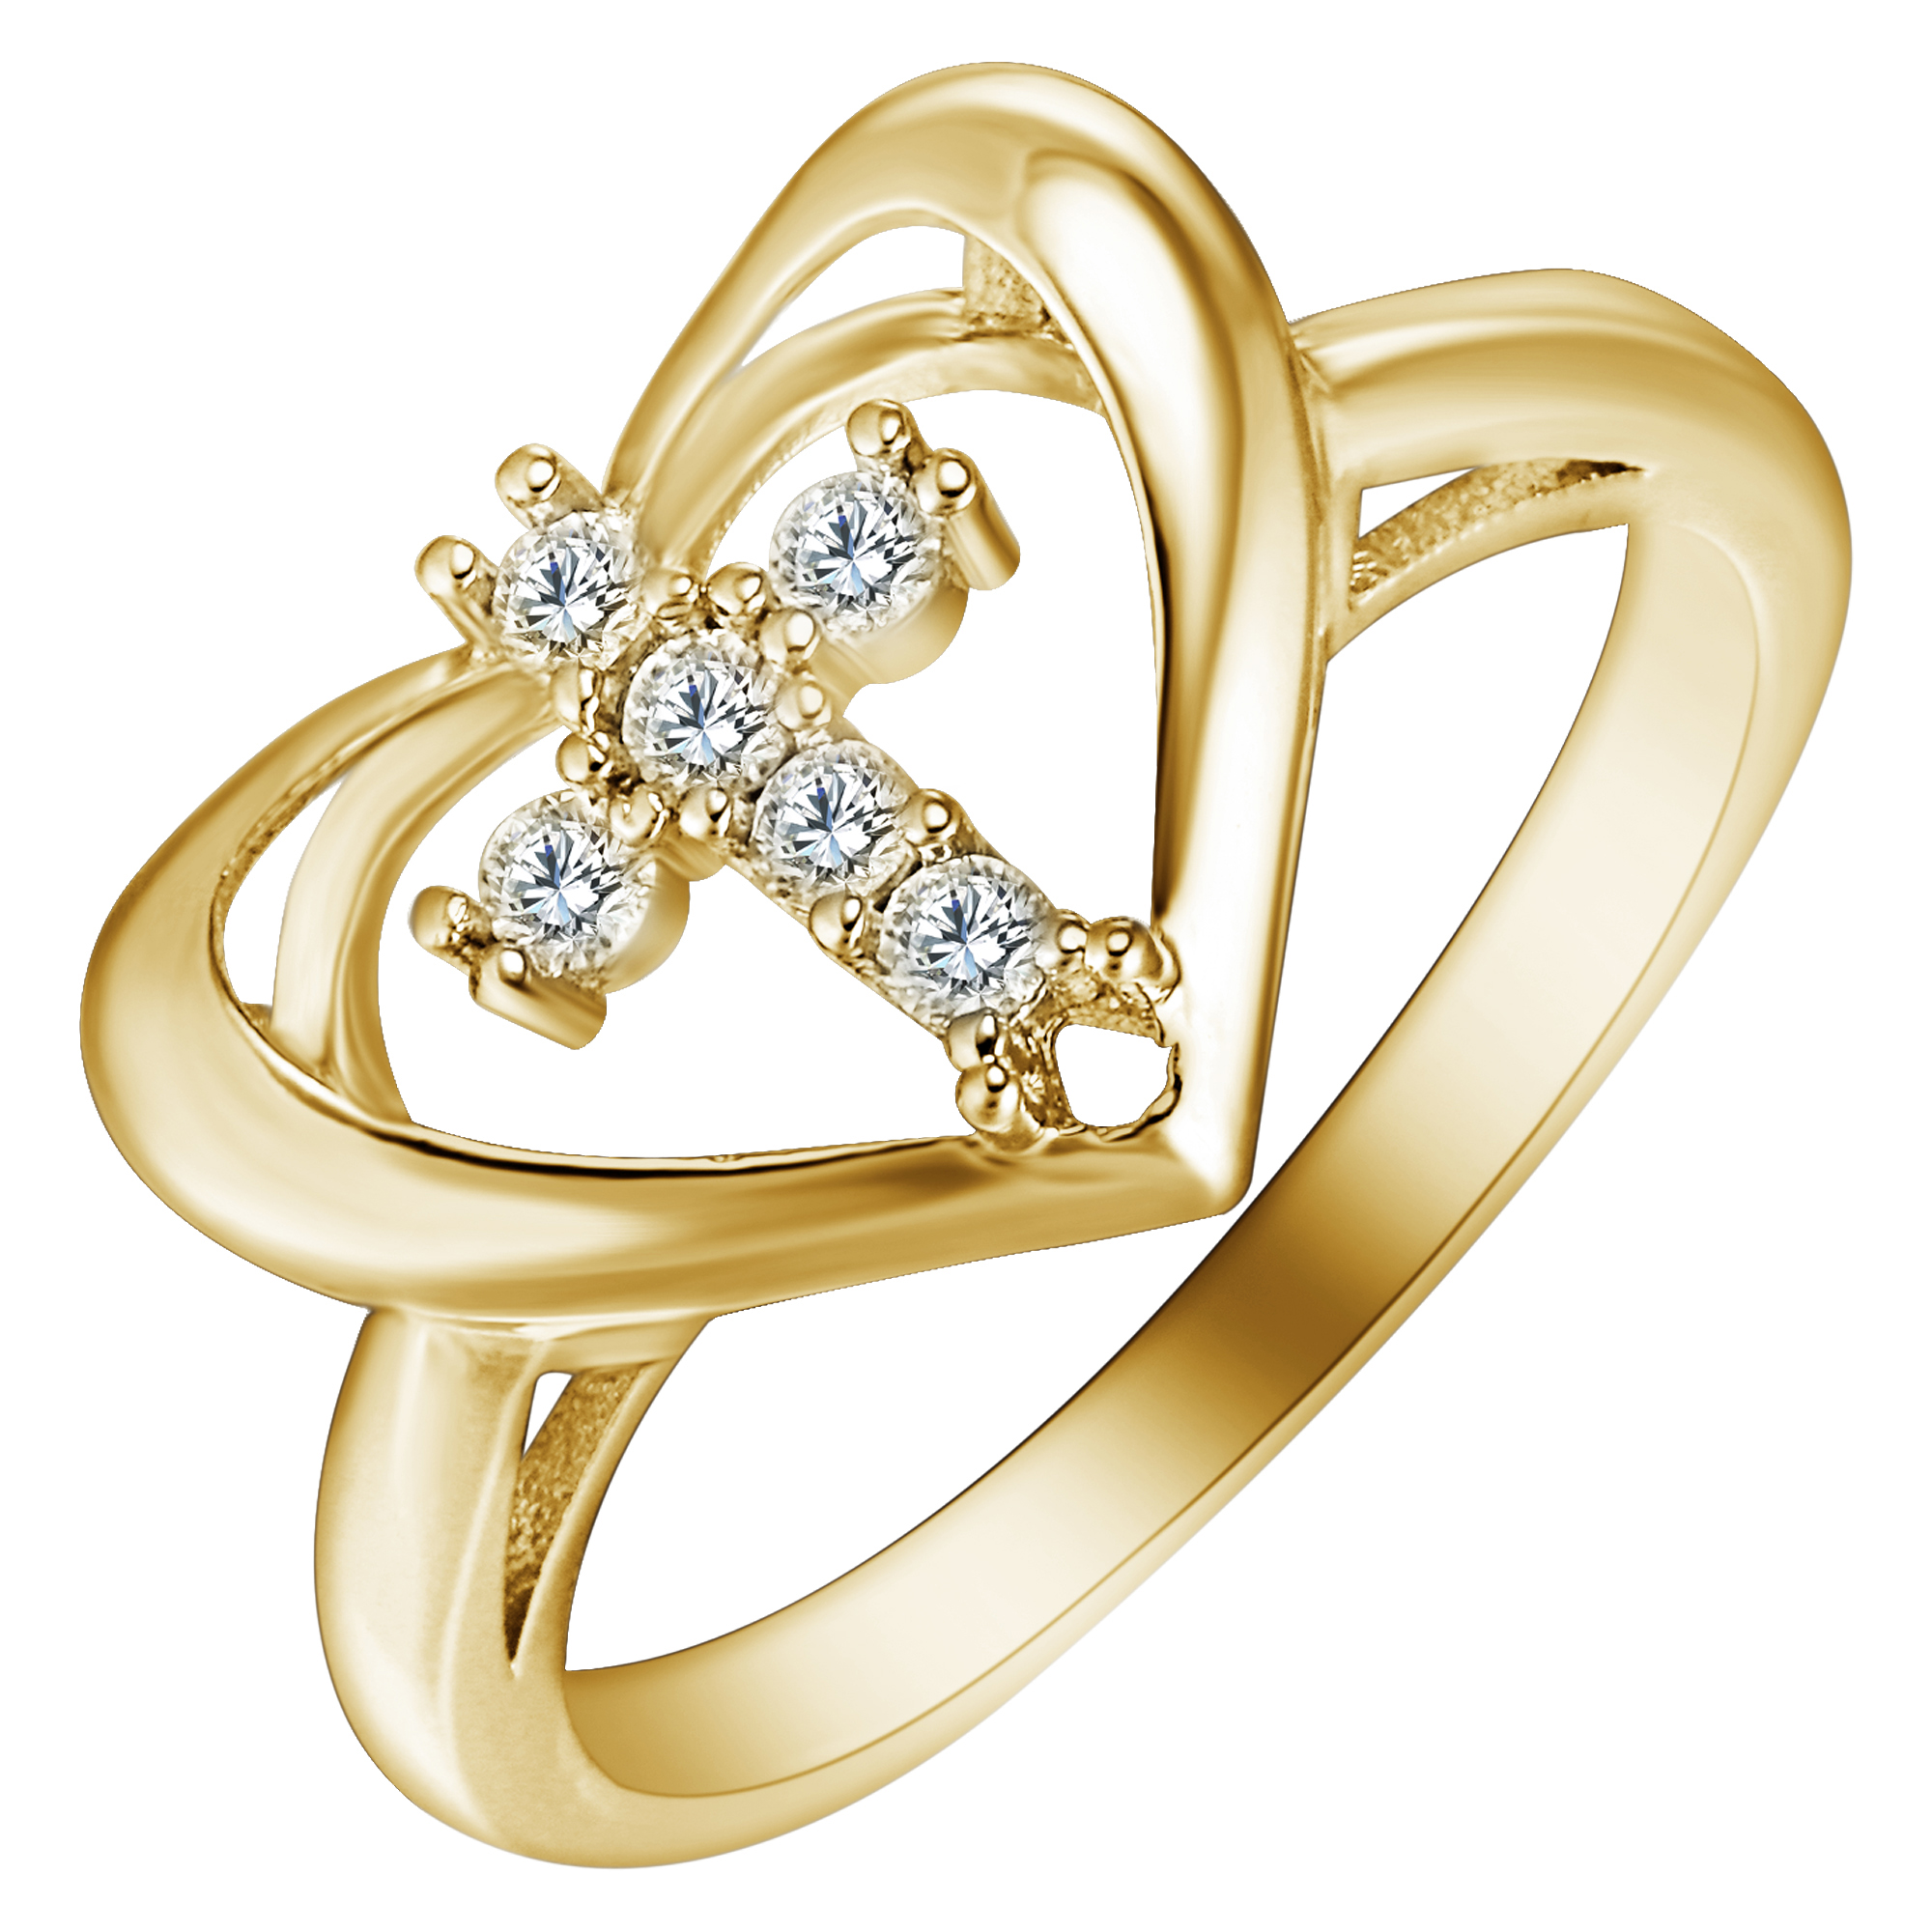 criss rings heart yellow gold il ring solitaire fullxfull cross p cut wedding twisted band anniversary